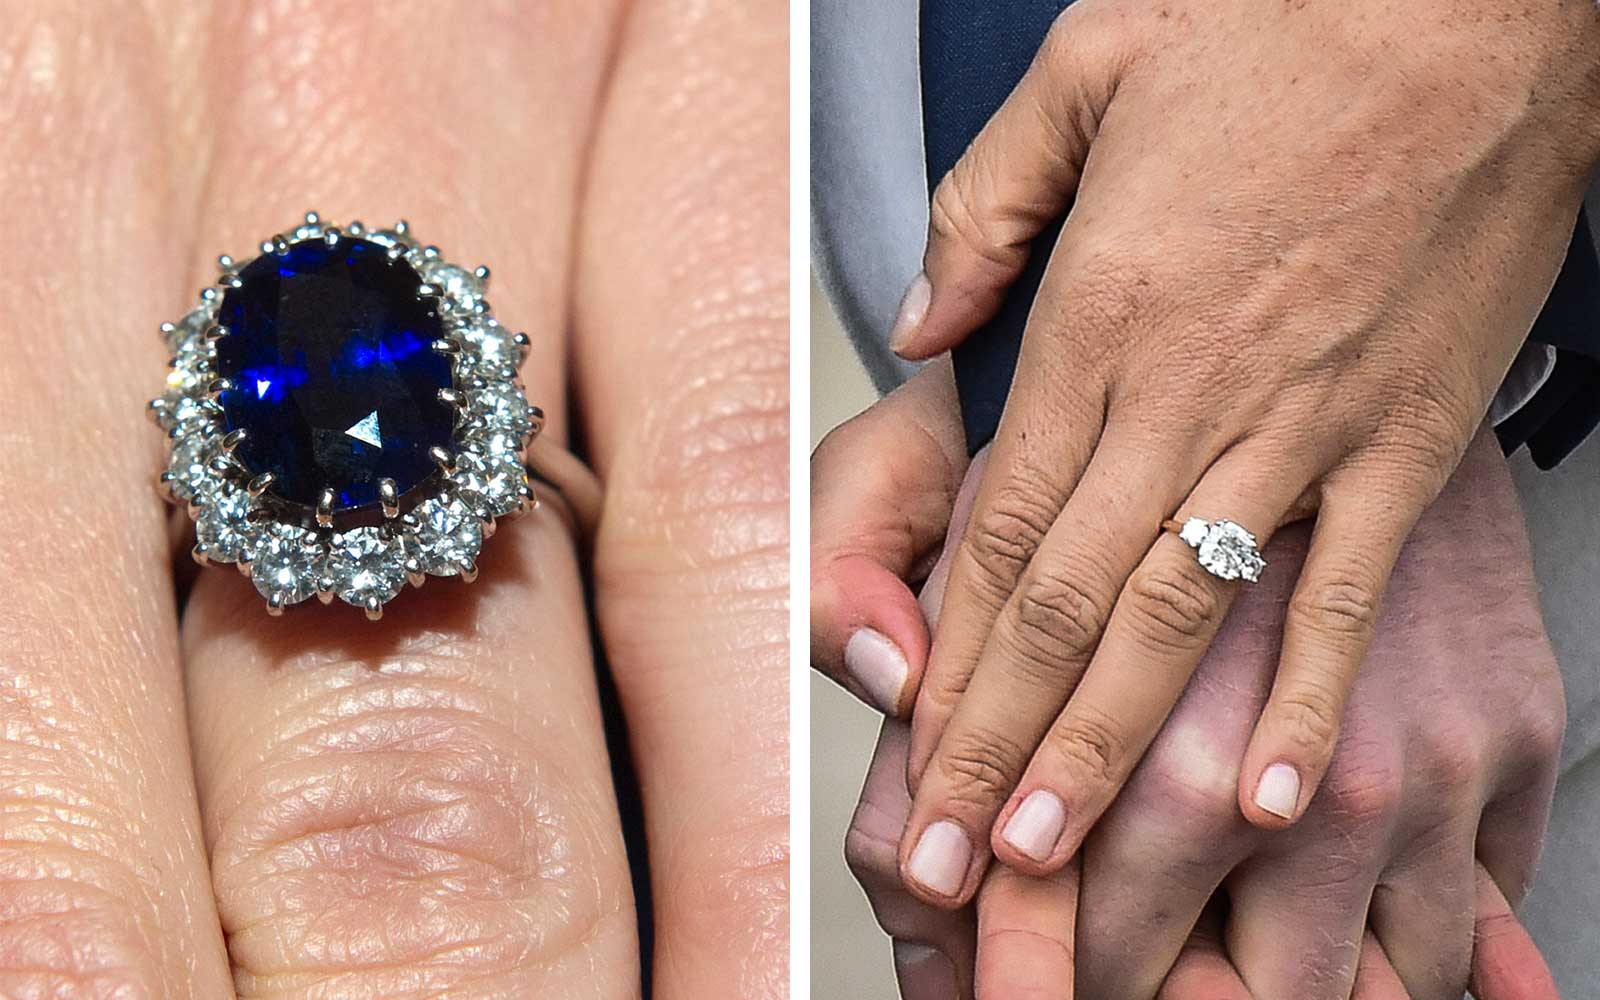 How Meghan Markles Engagement Ring Compares to Kate Middletons